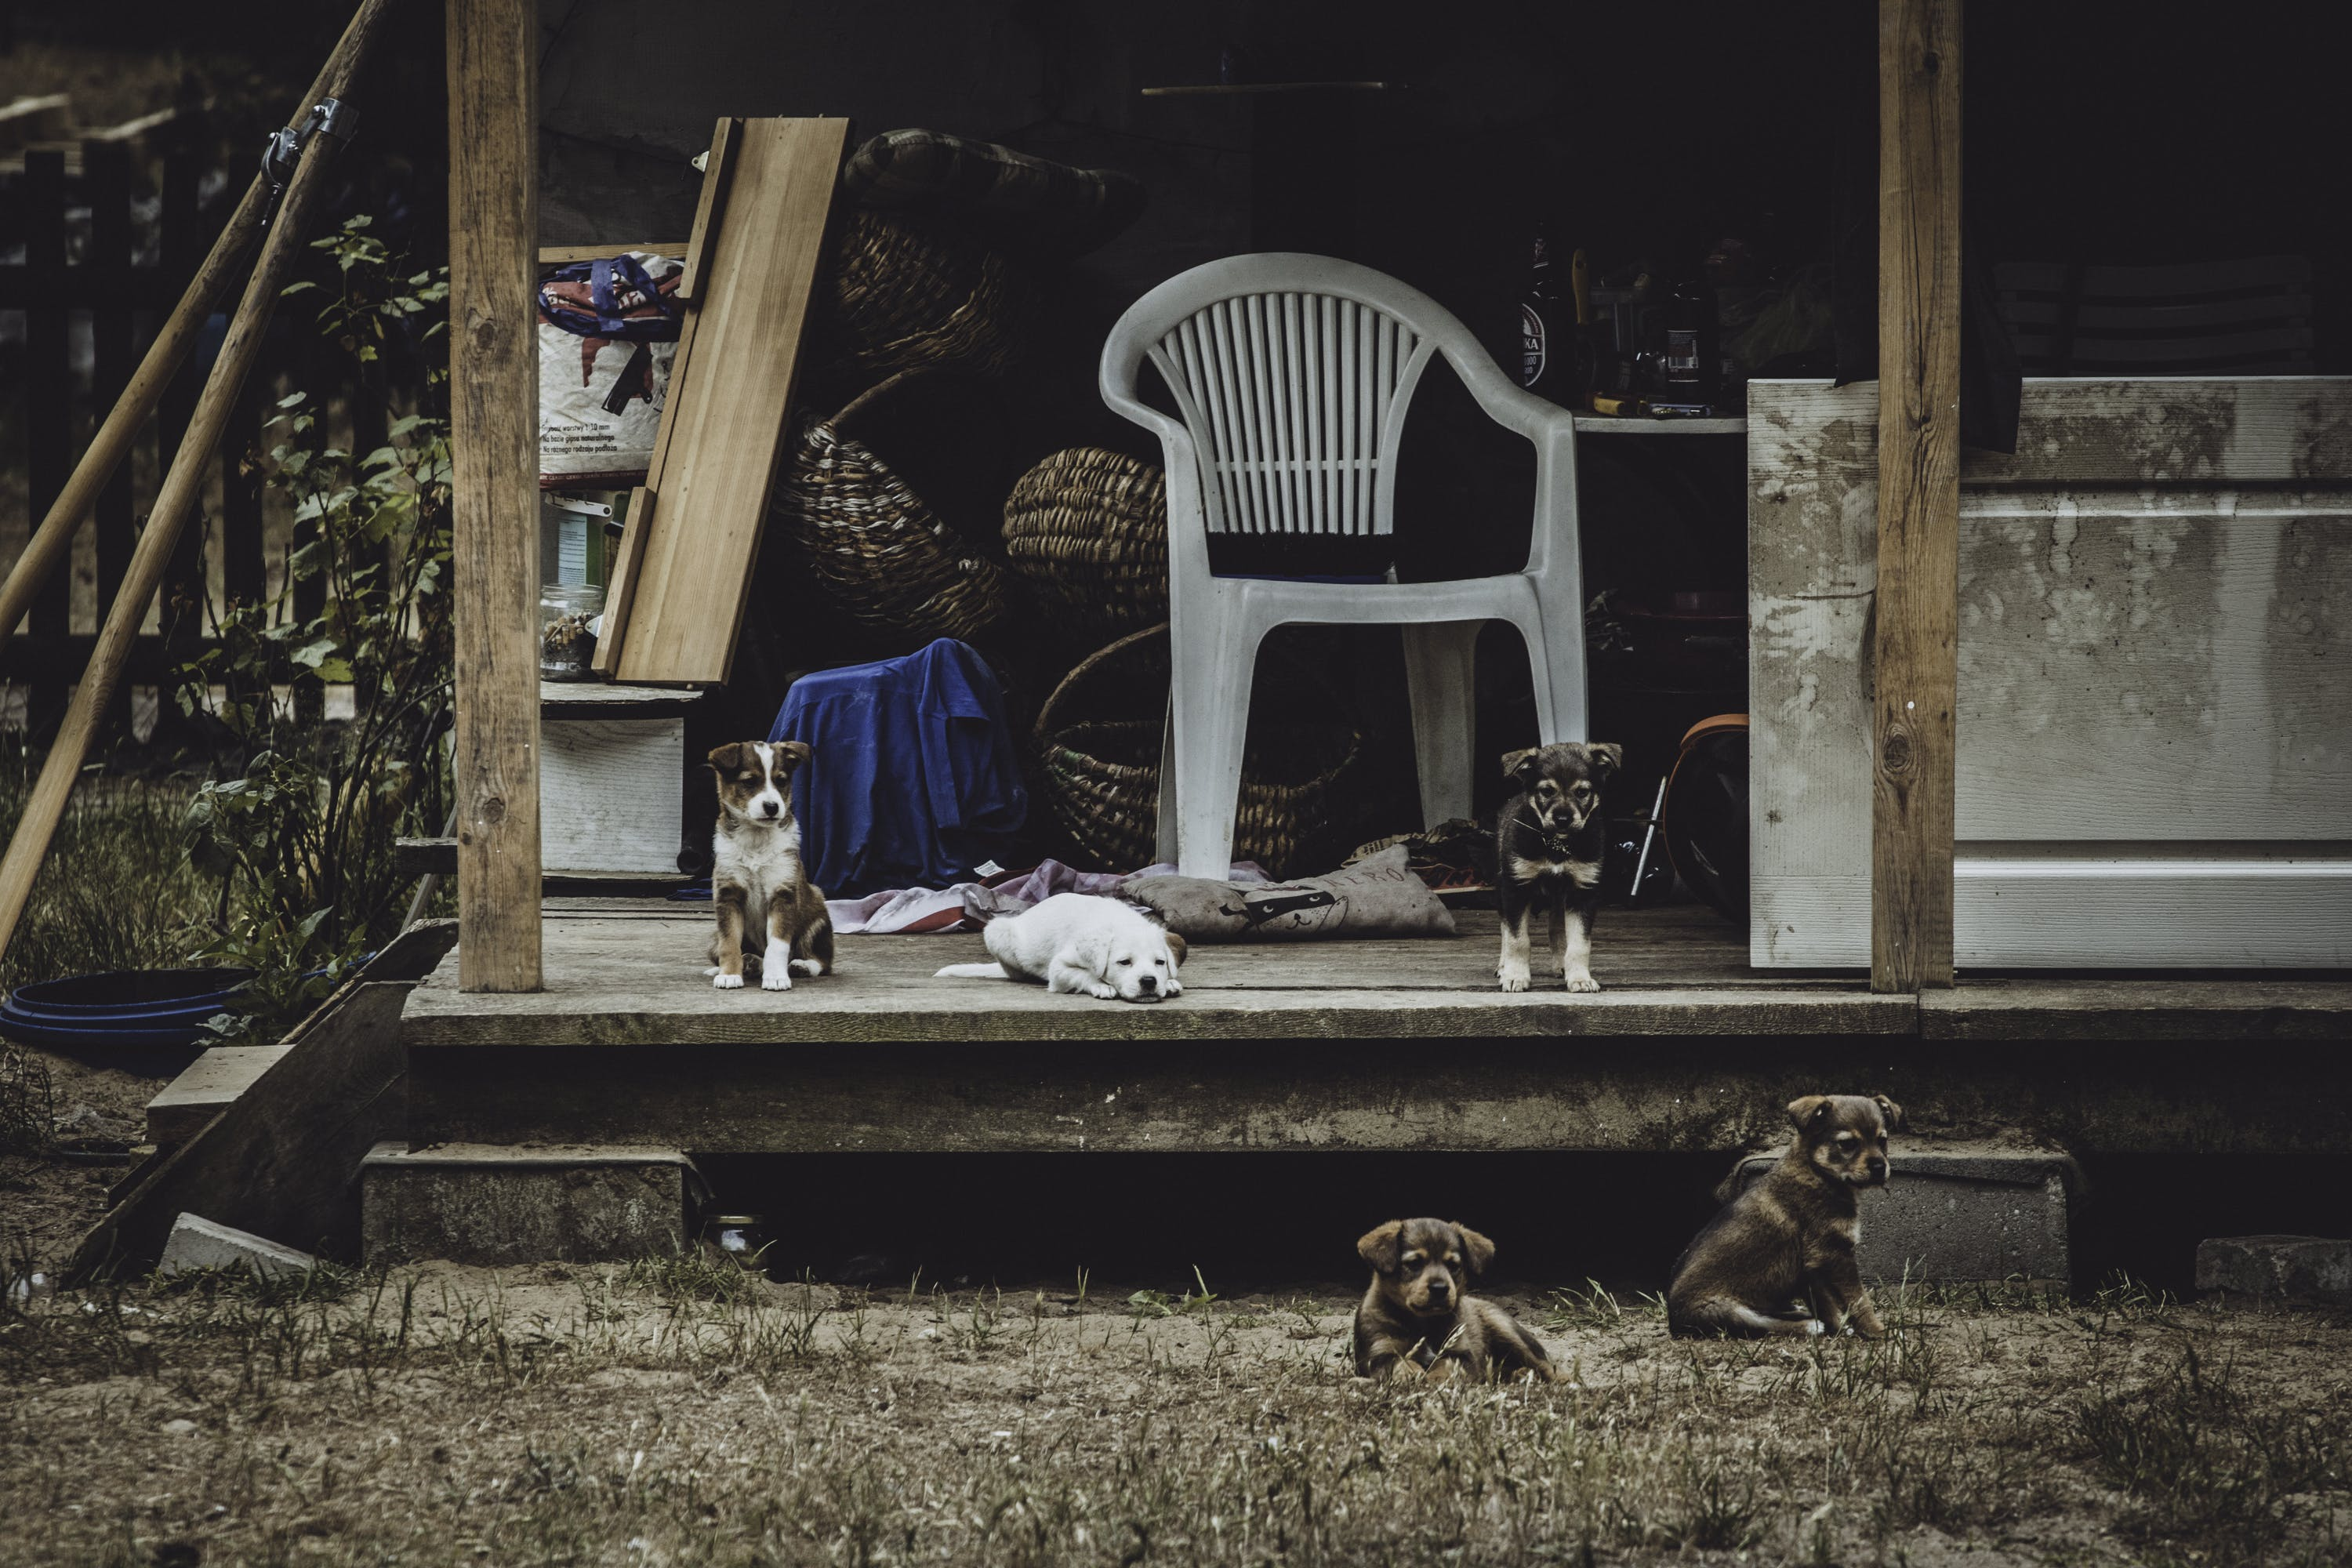 Puppies Beside White Armchair